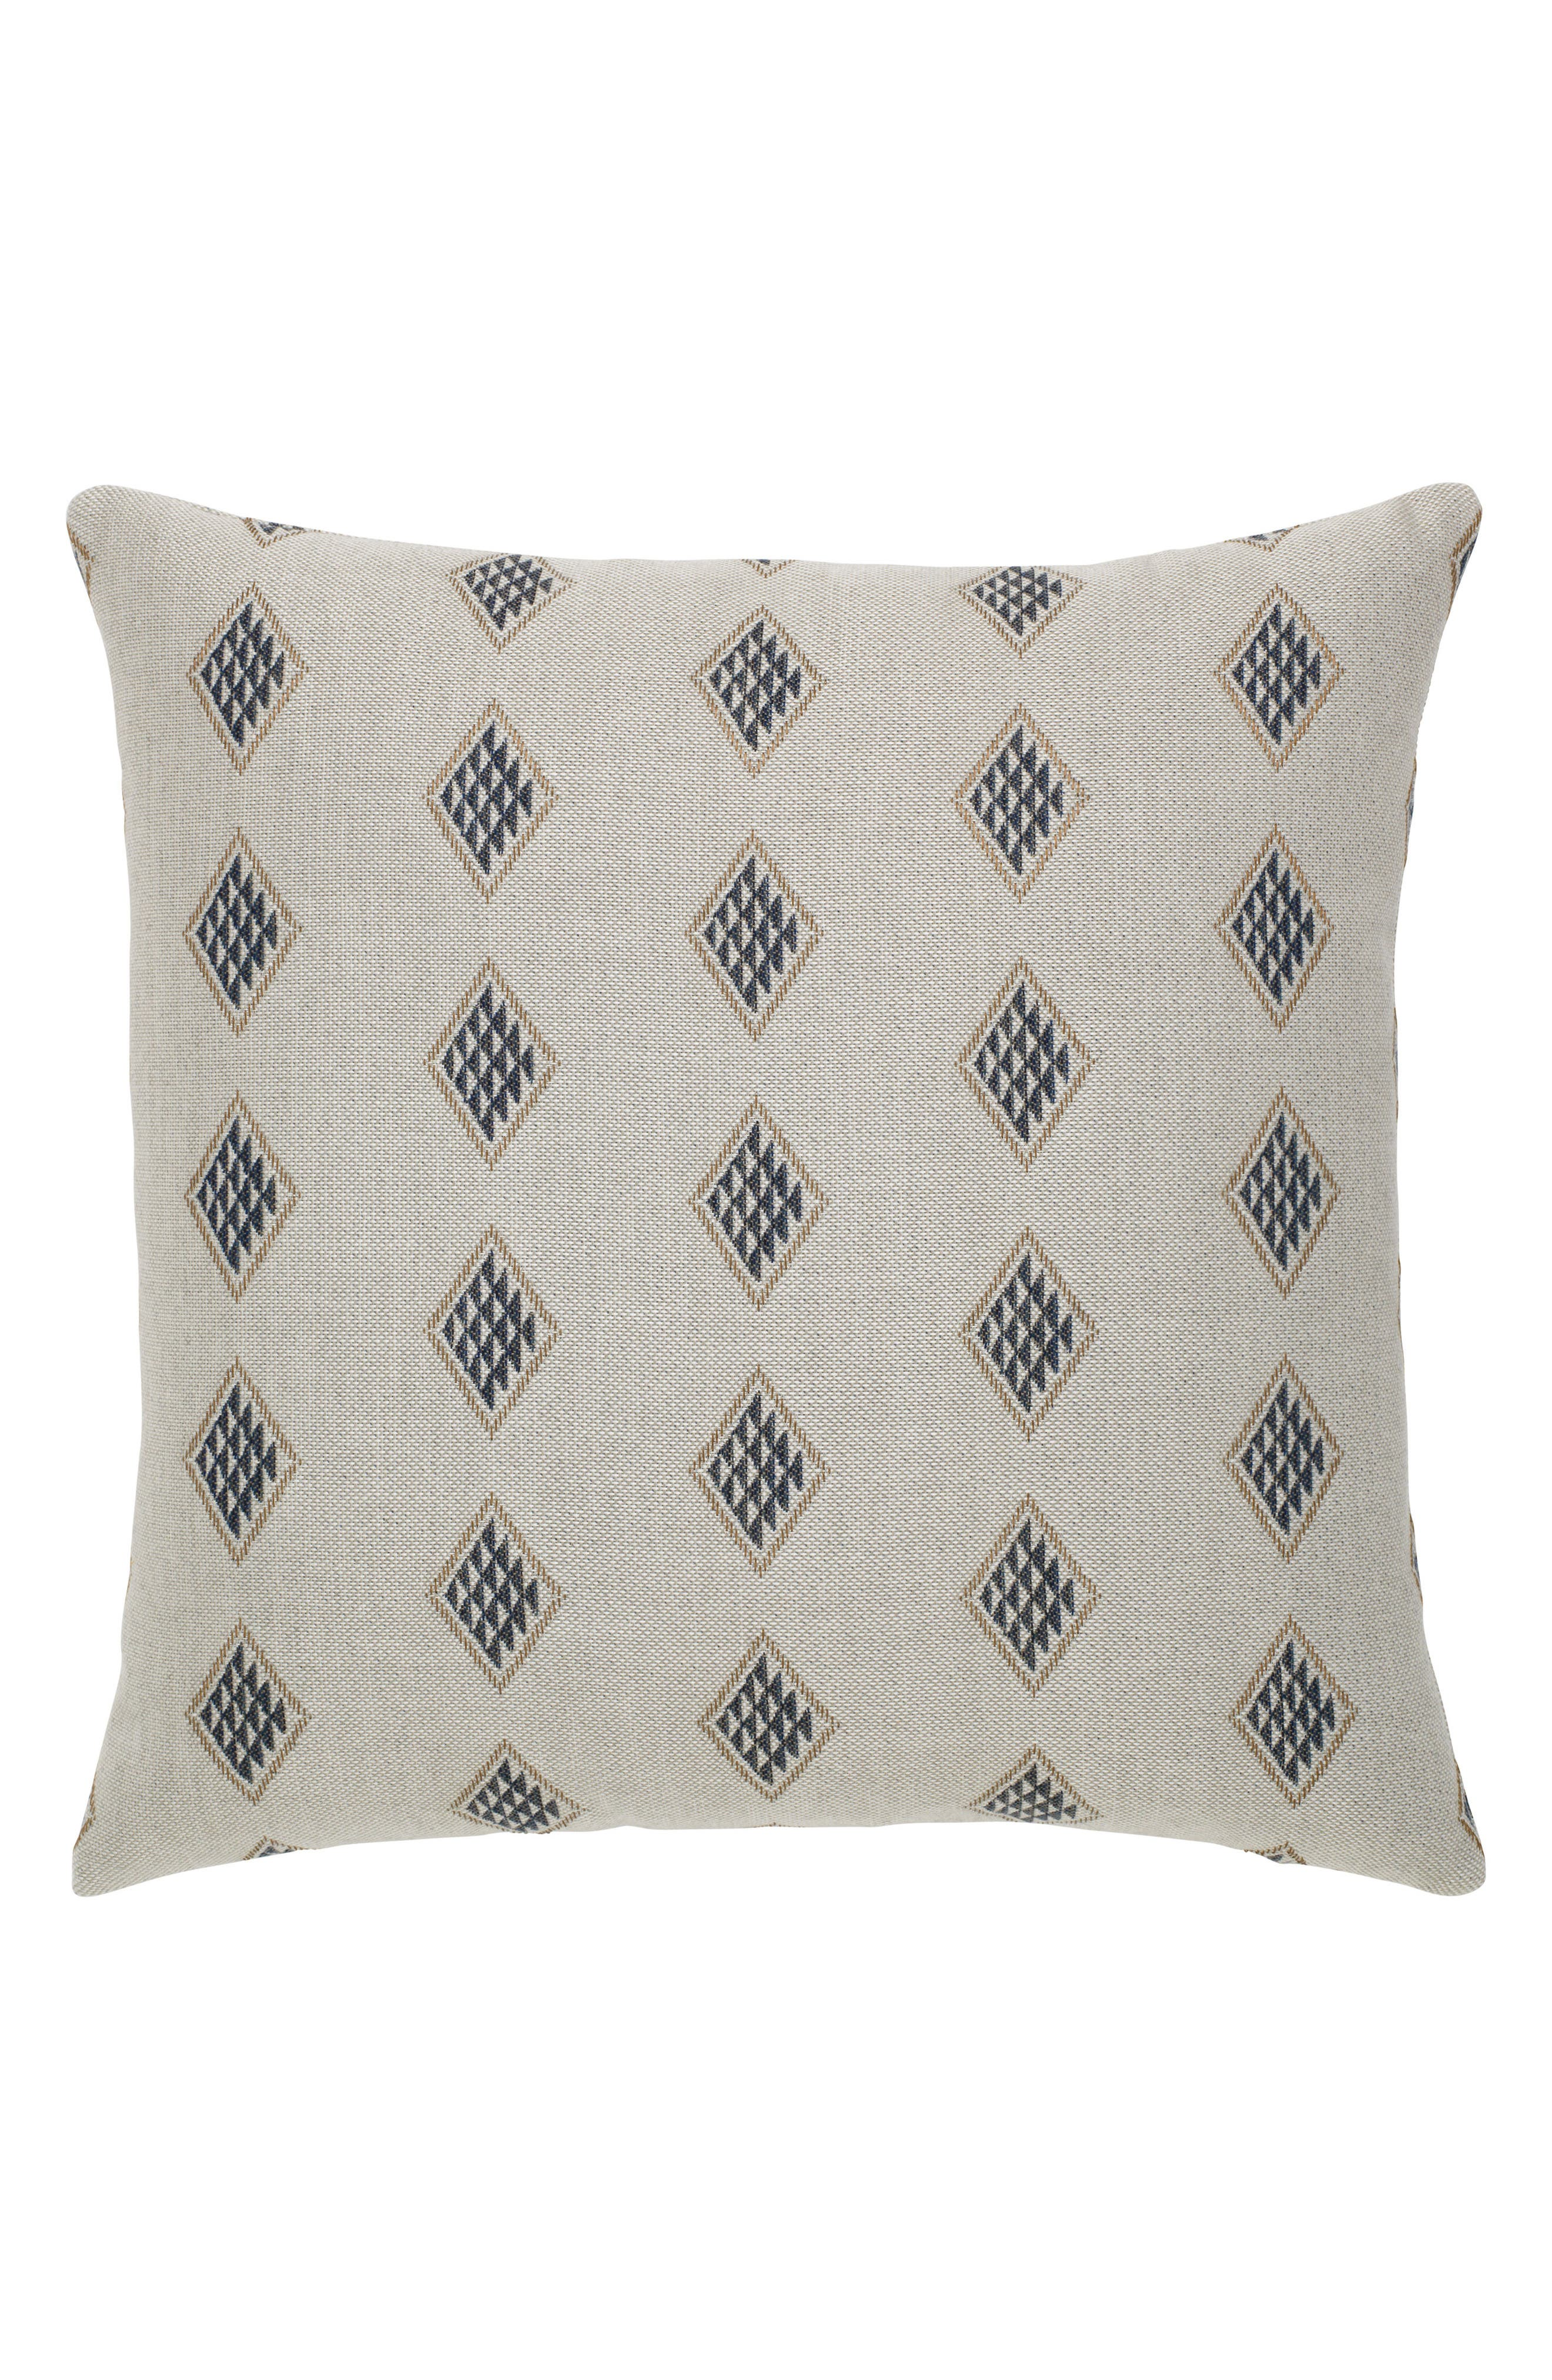 Passage Indoor/Outdoor Accent Pillow,                             Main thumbnail 1, color,                             100